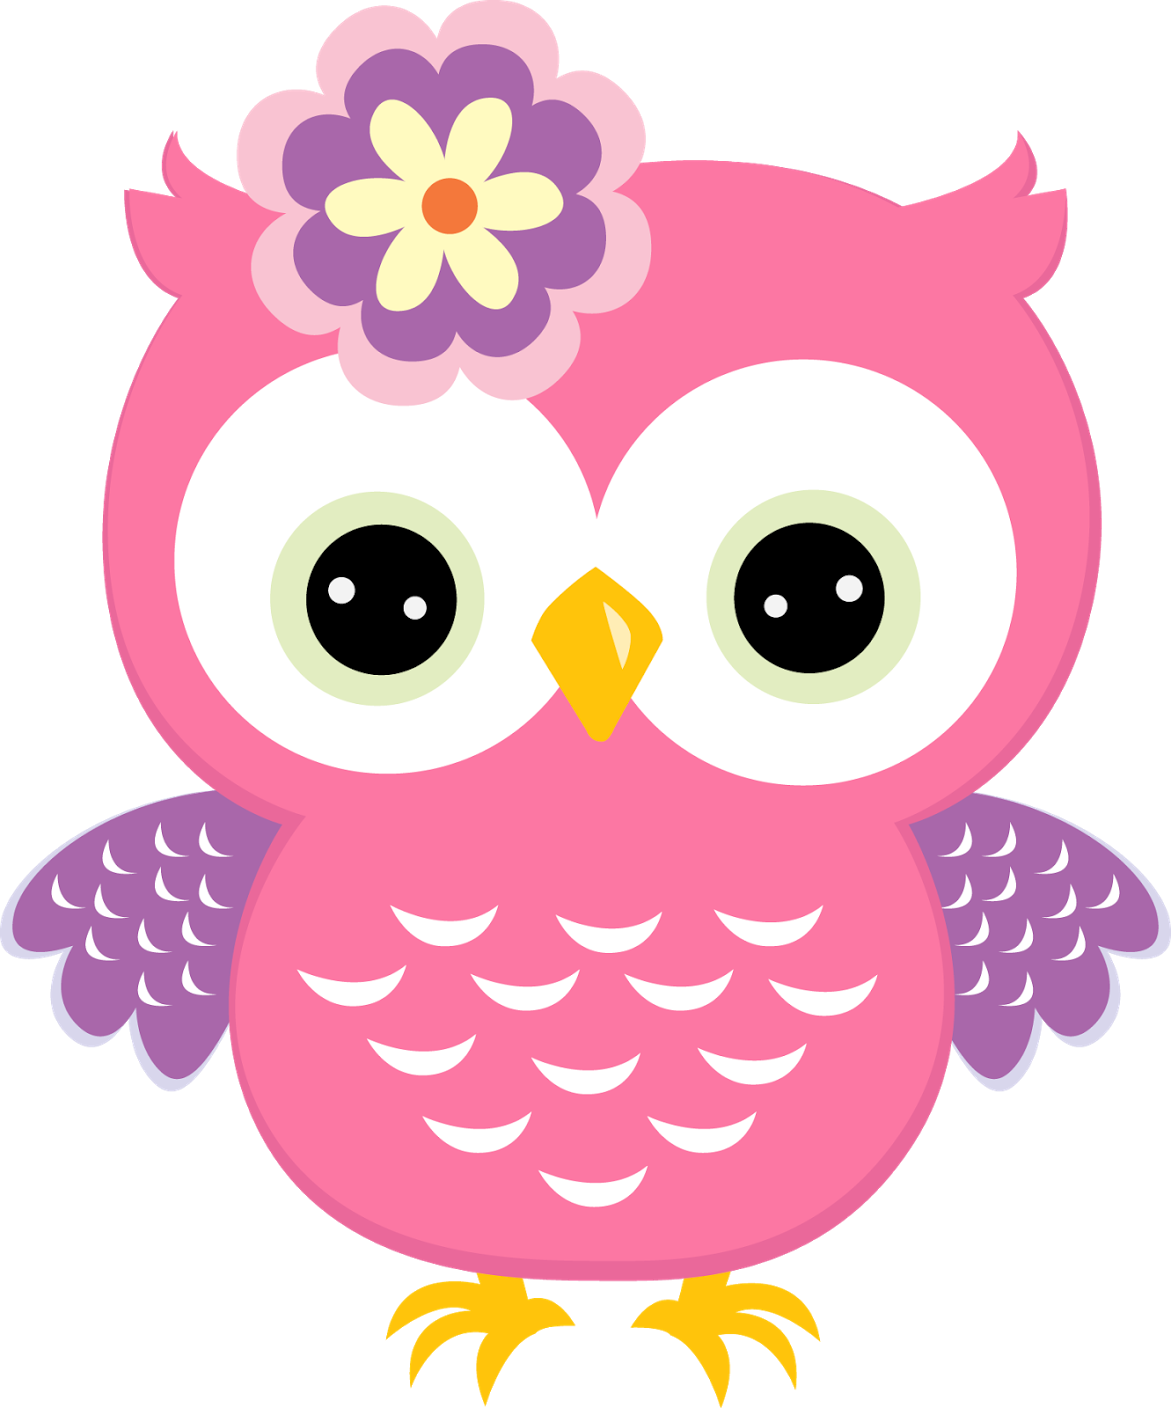 banner transparent stock Cherry pinterest cherries owl. Beard clipart baby shower